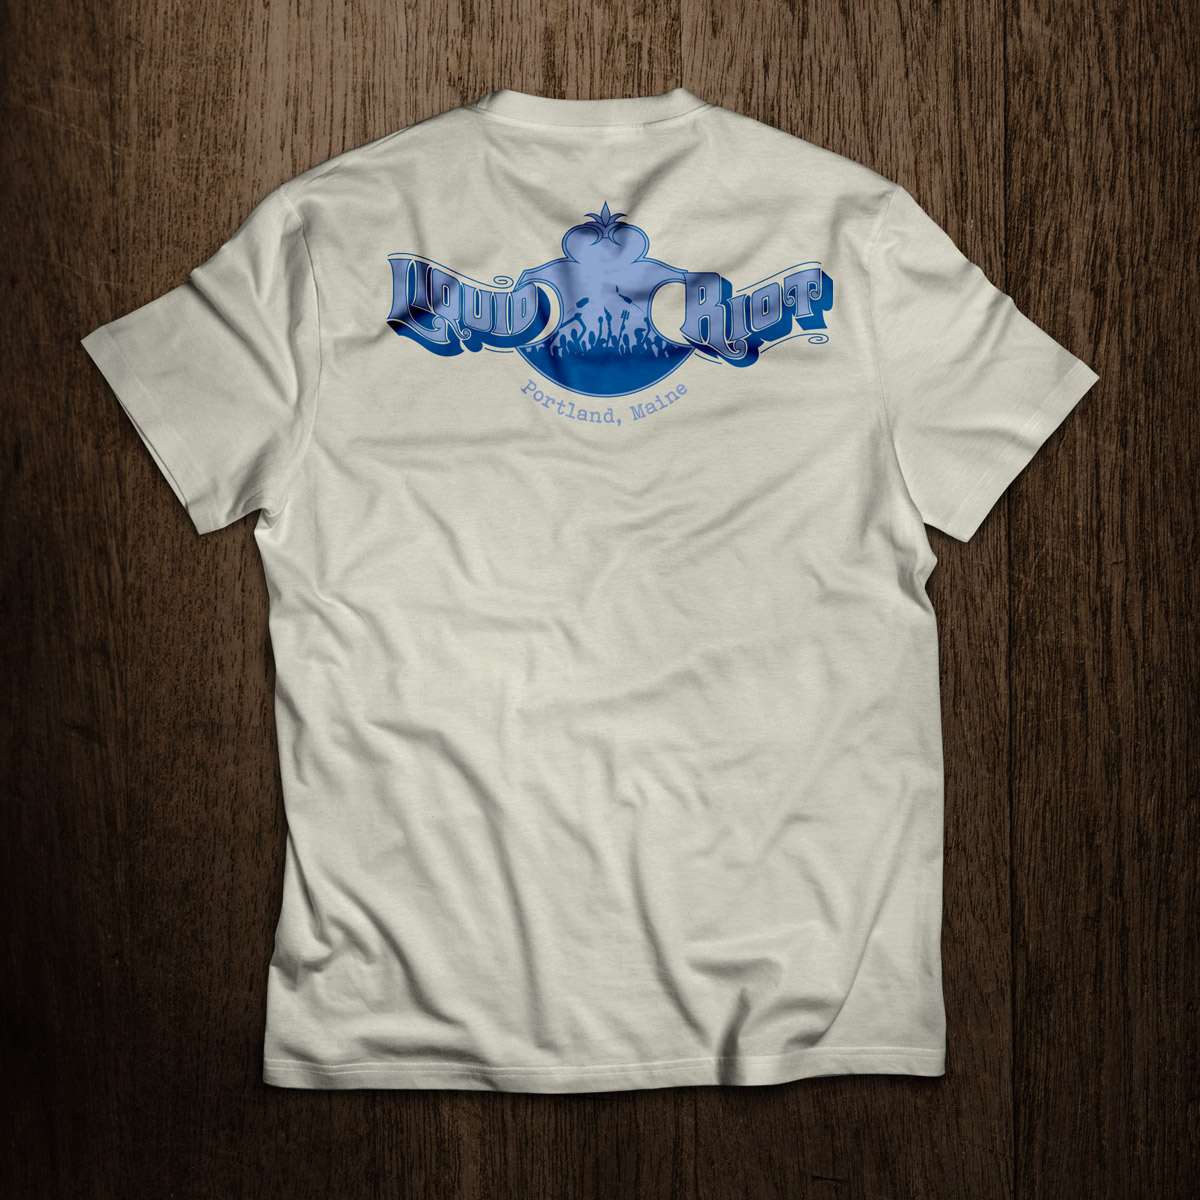 Liquid Riot Herbie T-shirt